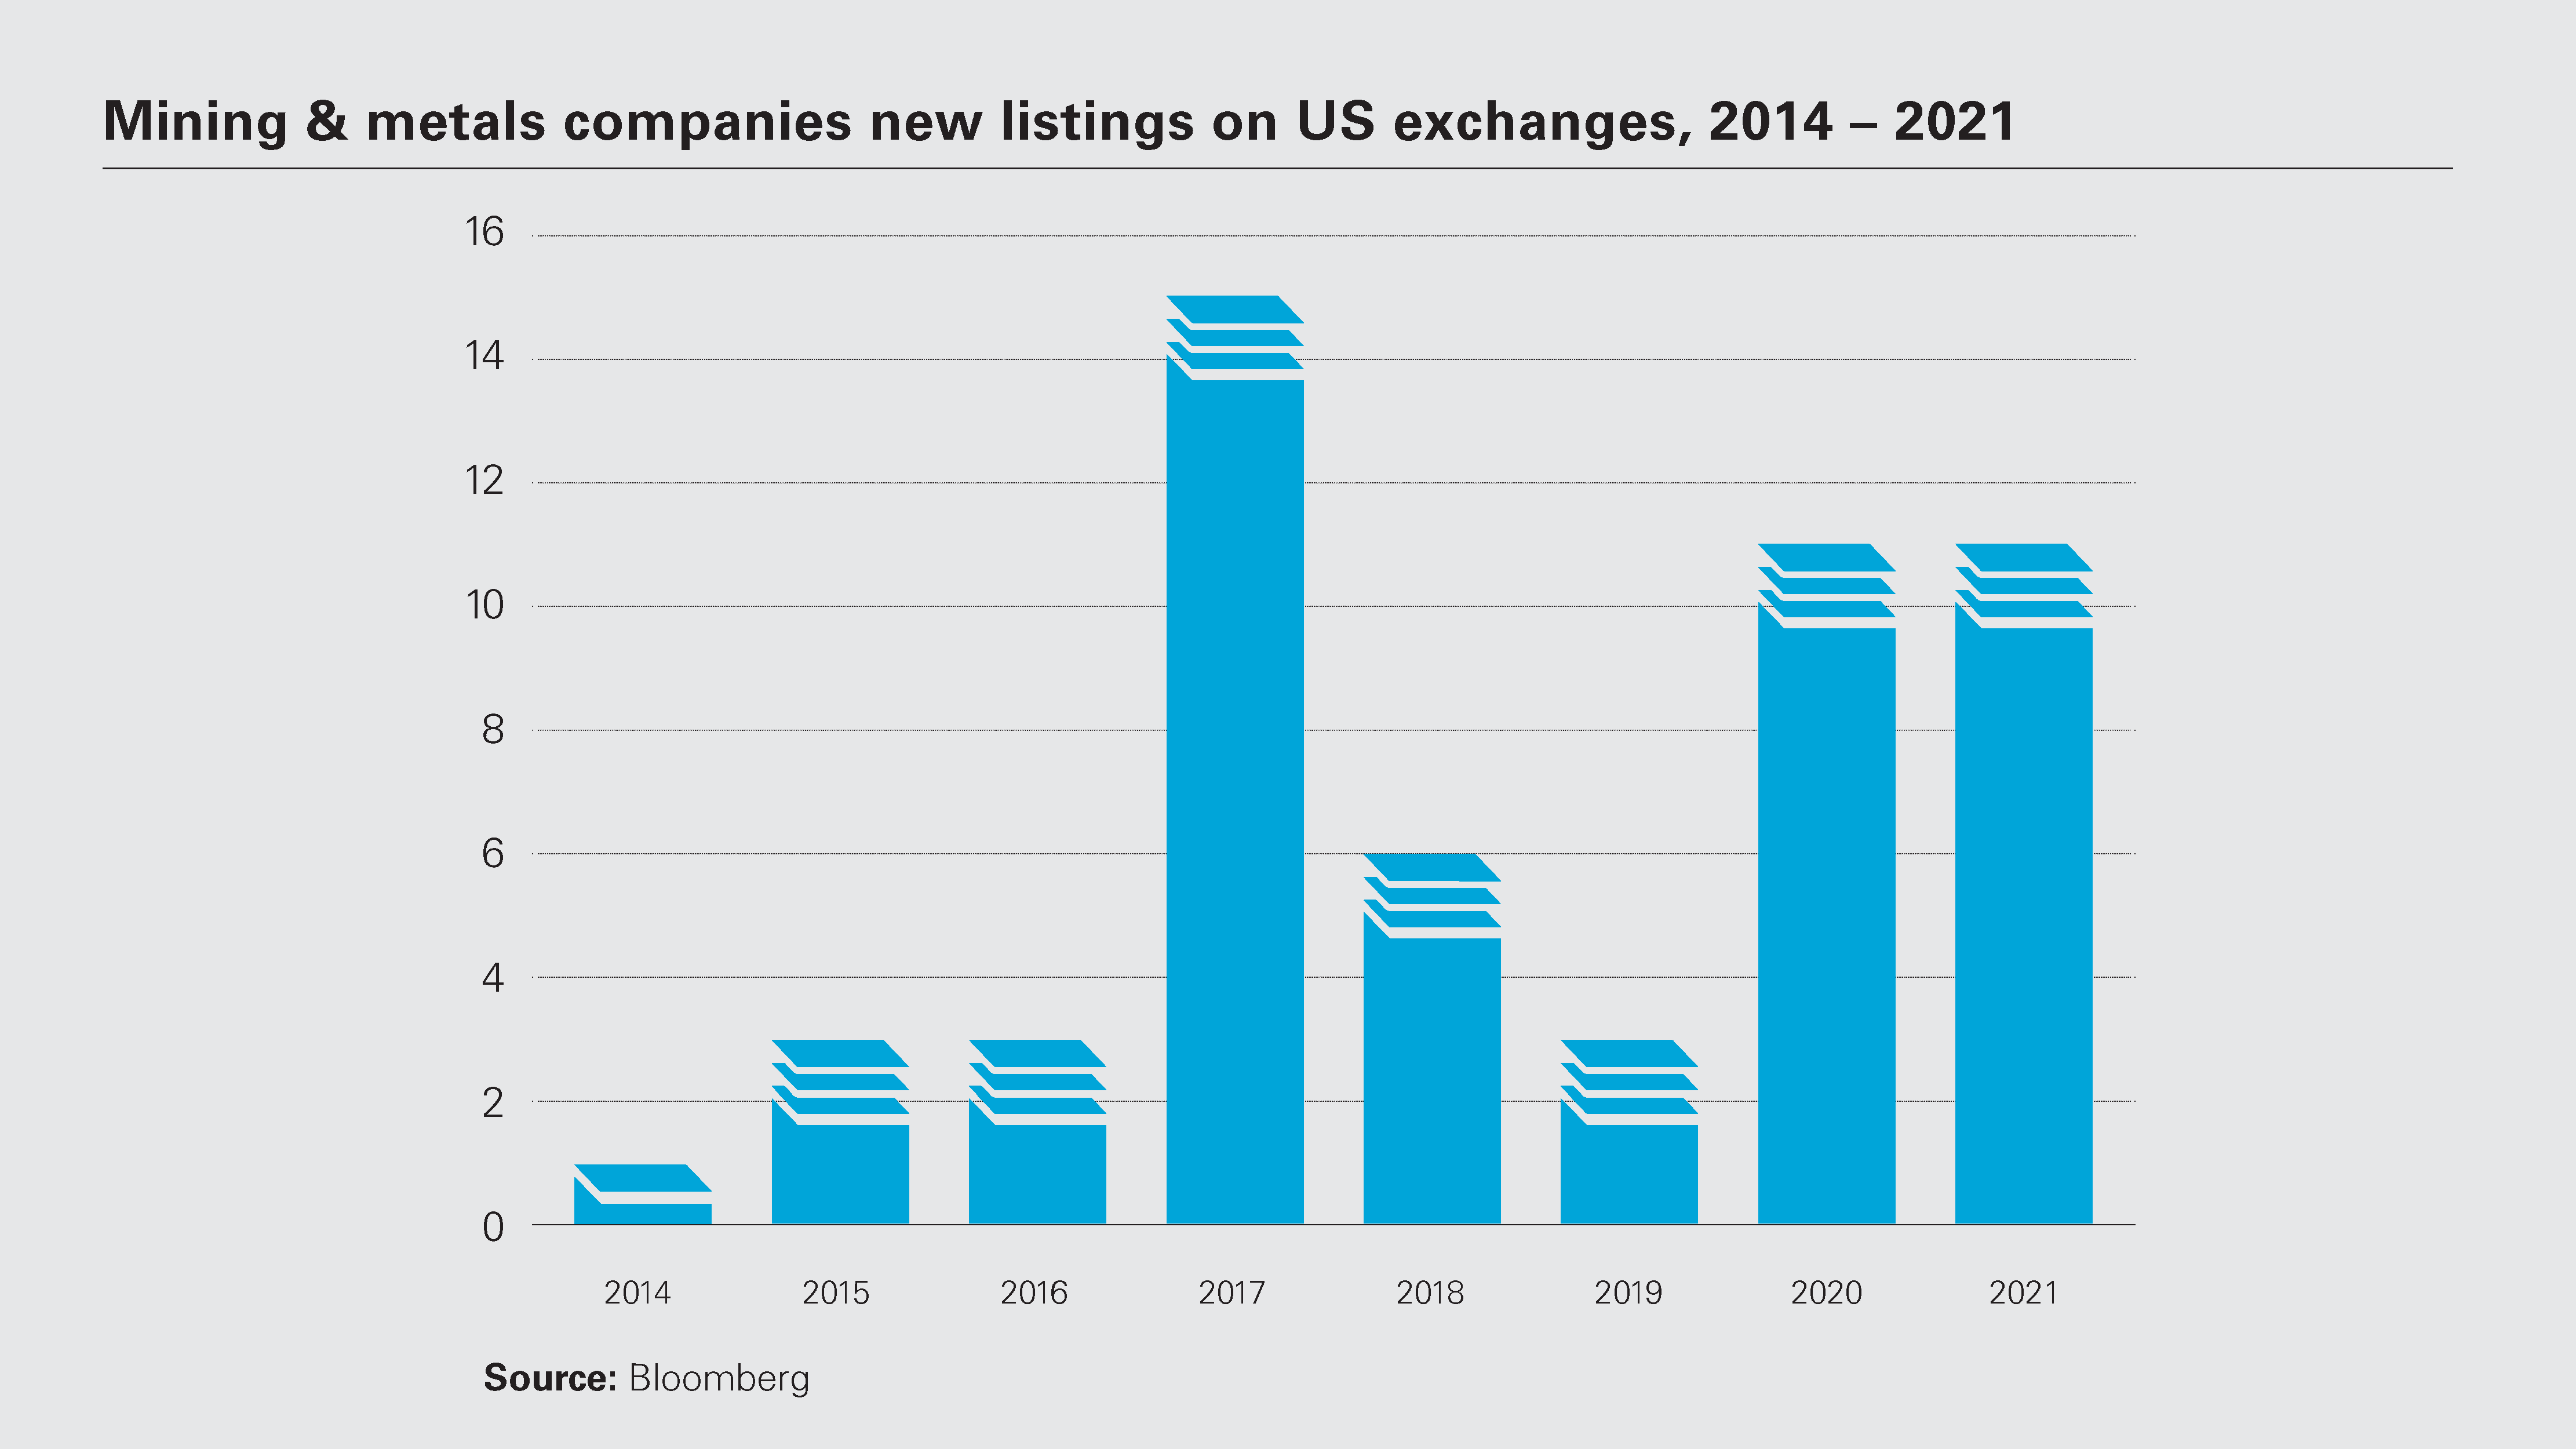 Mining & metals companies new listings on US exchanges, 2014 – 2021